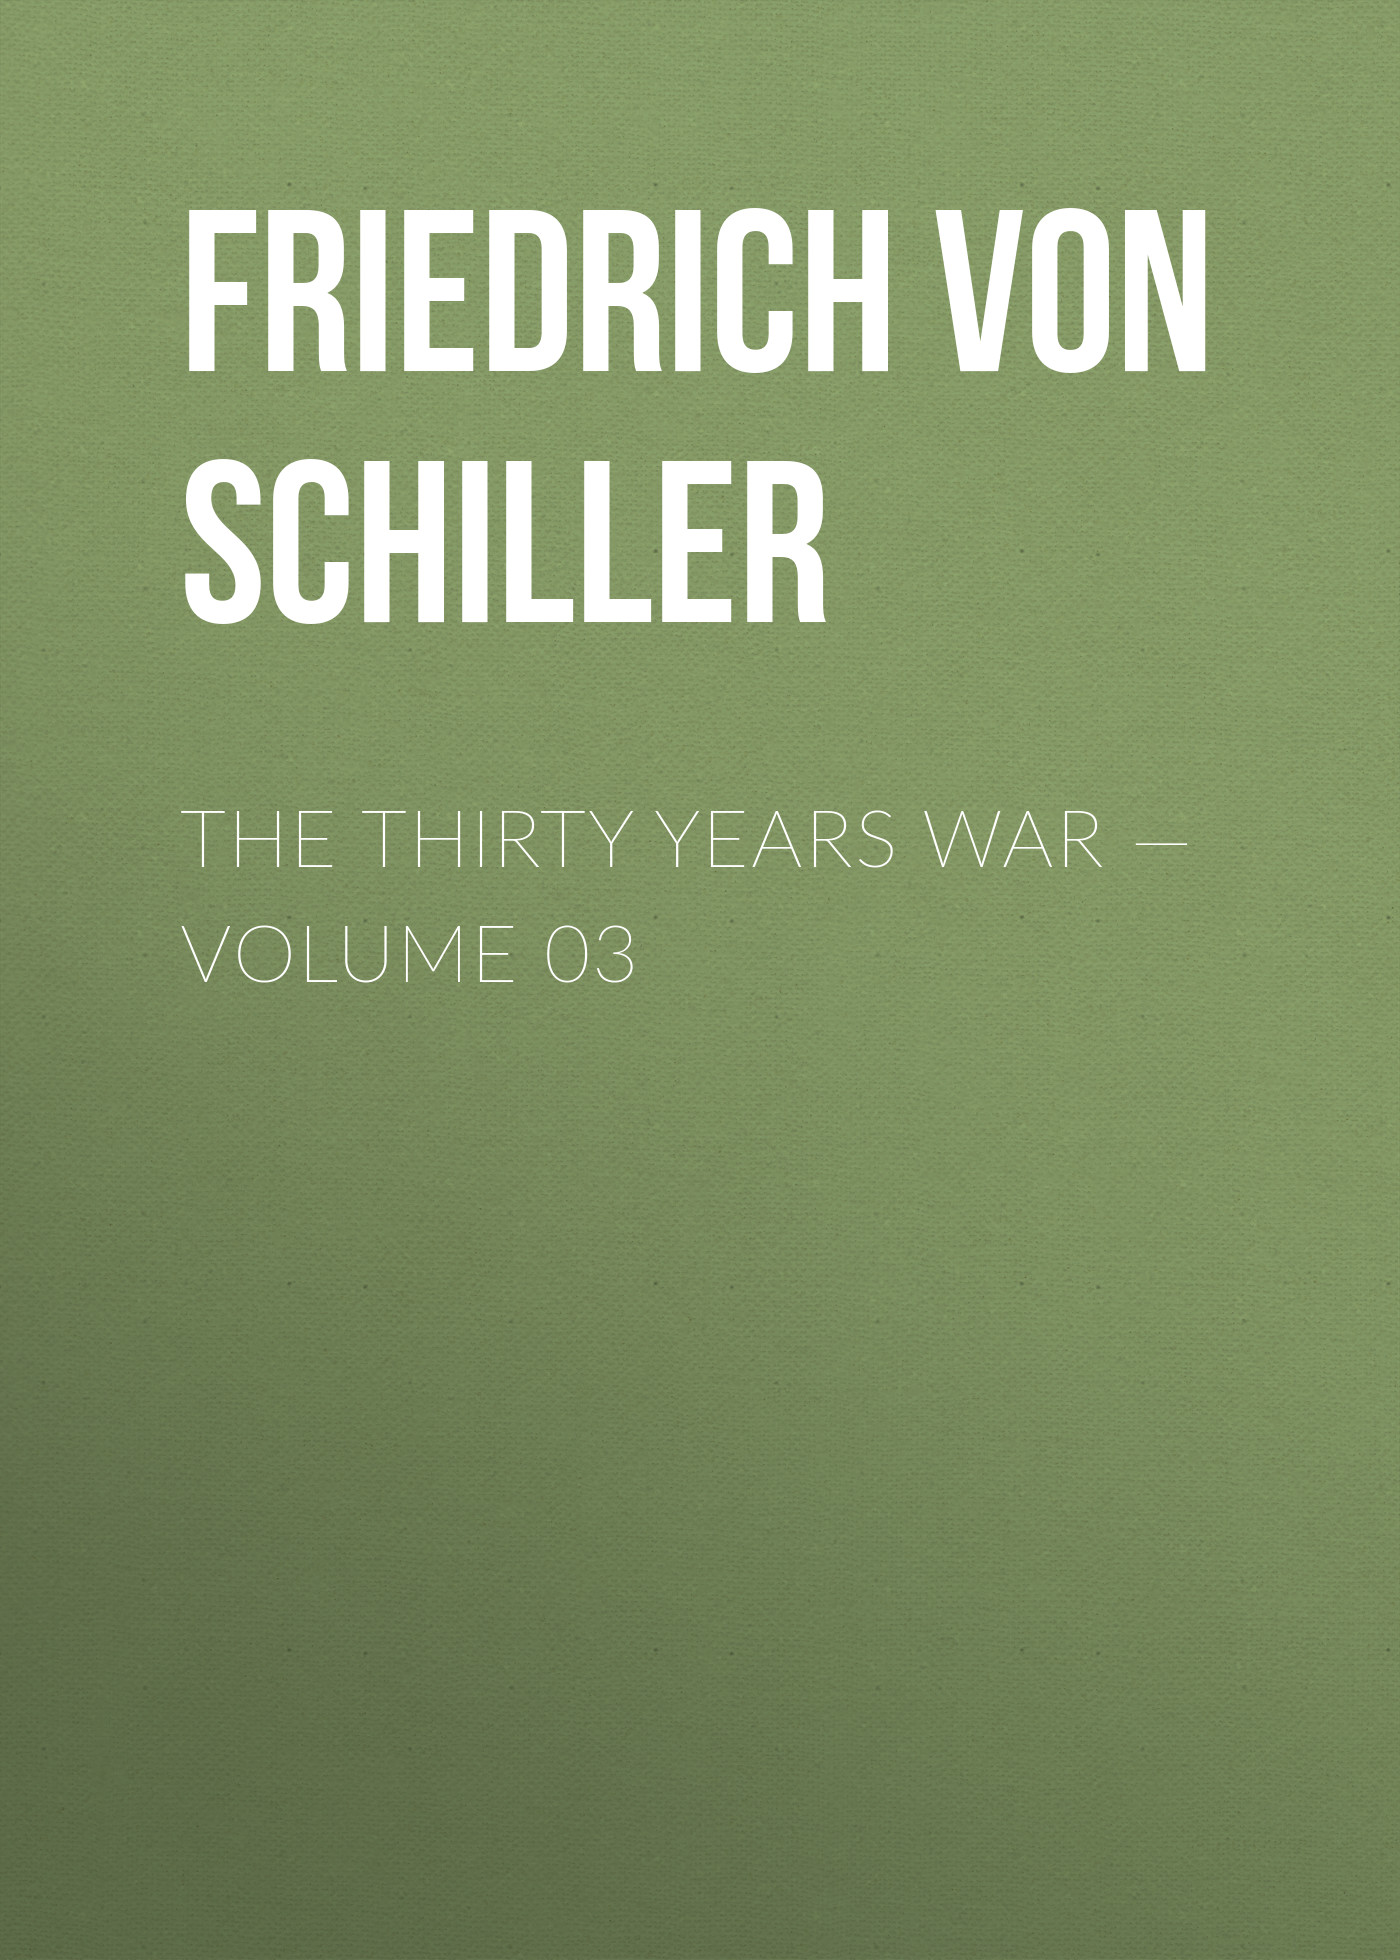 Friedrich von Schiller The Thirty Years War — Volume 03 master of war volume 1